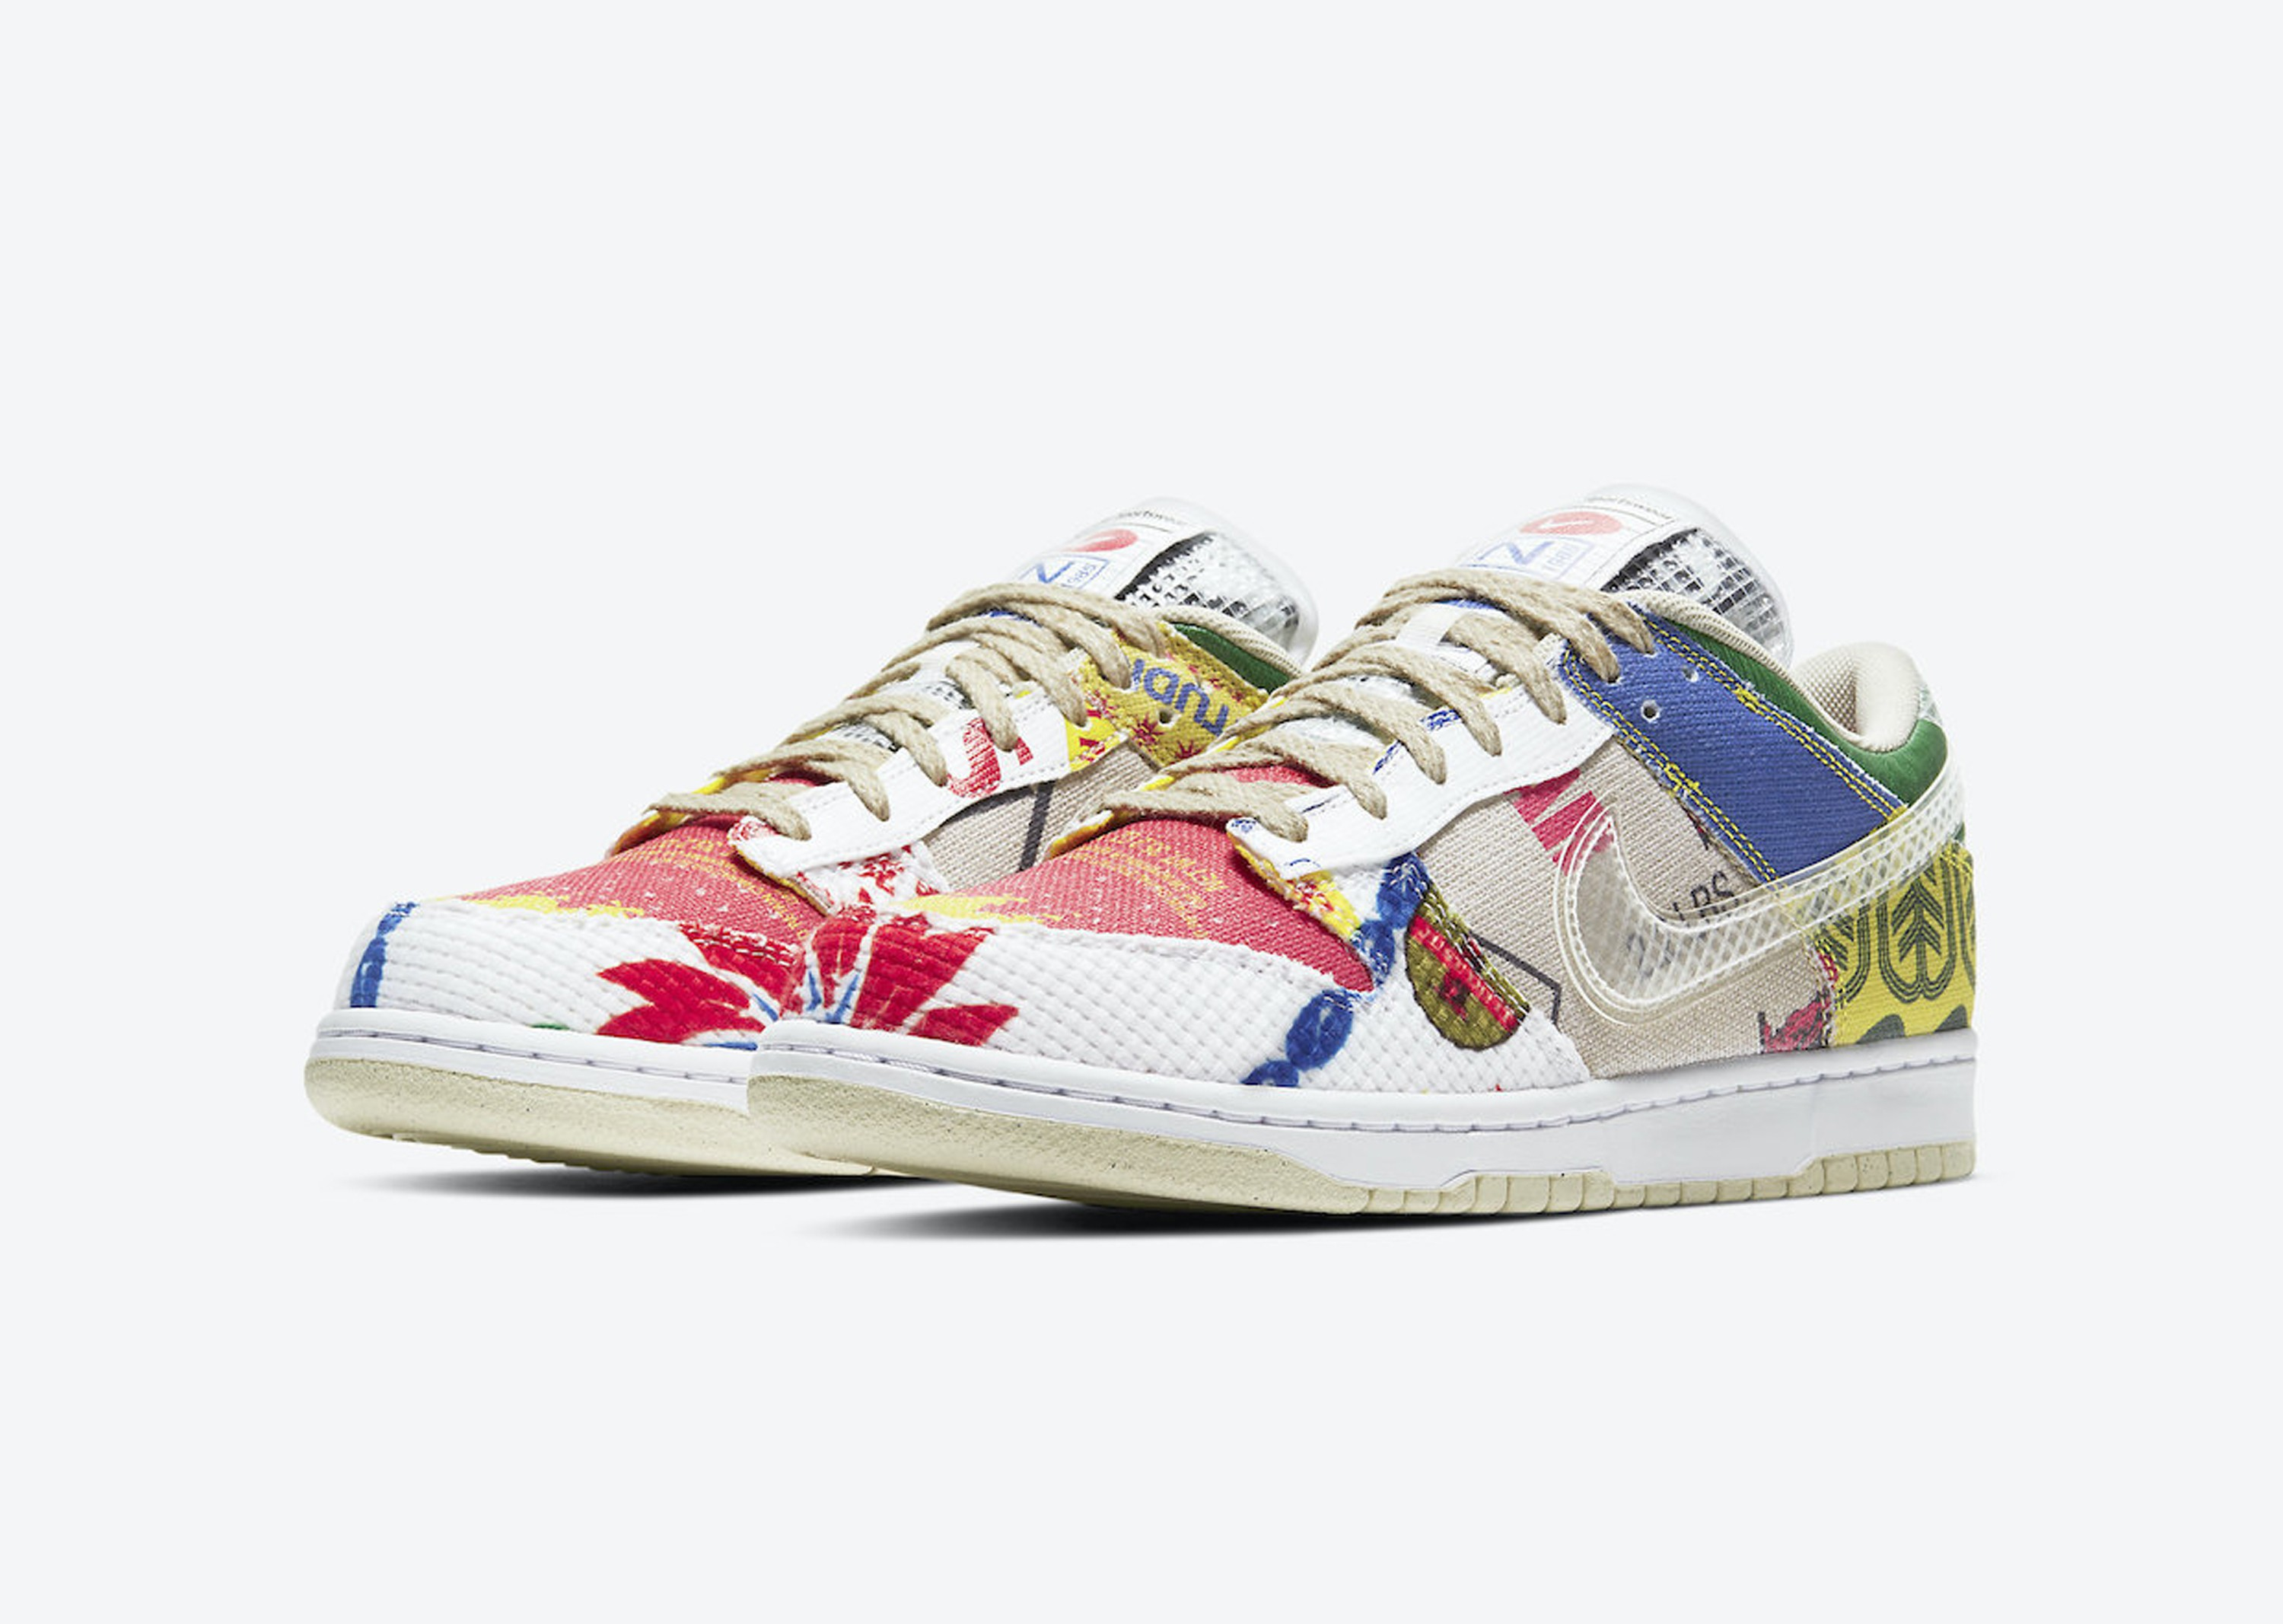 Nike_Dunk_Low_MarketCity__0003_Layer 1